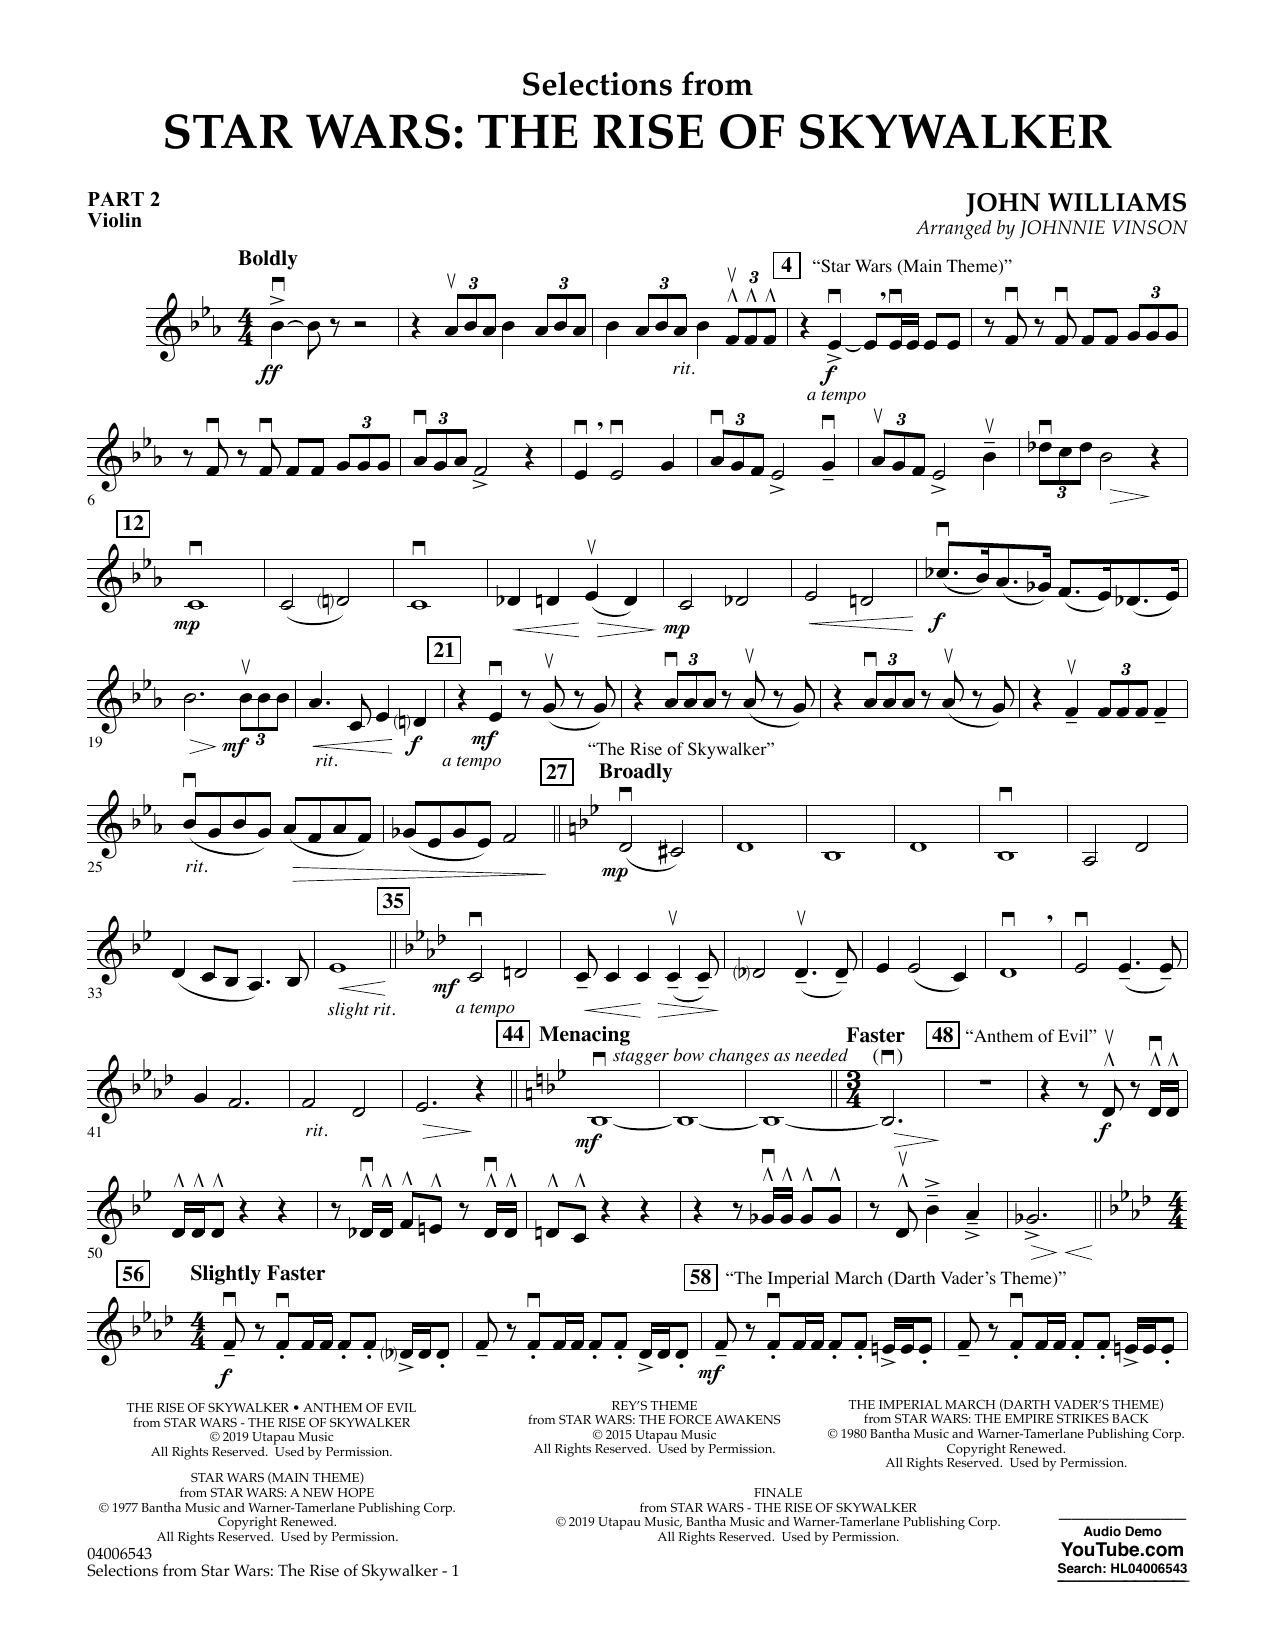 John Williams Selections from Star Wars: The Rise of Skywalker - Pt.2 - Violin sheet music notes and chords. Download Printable PDF.